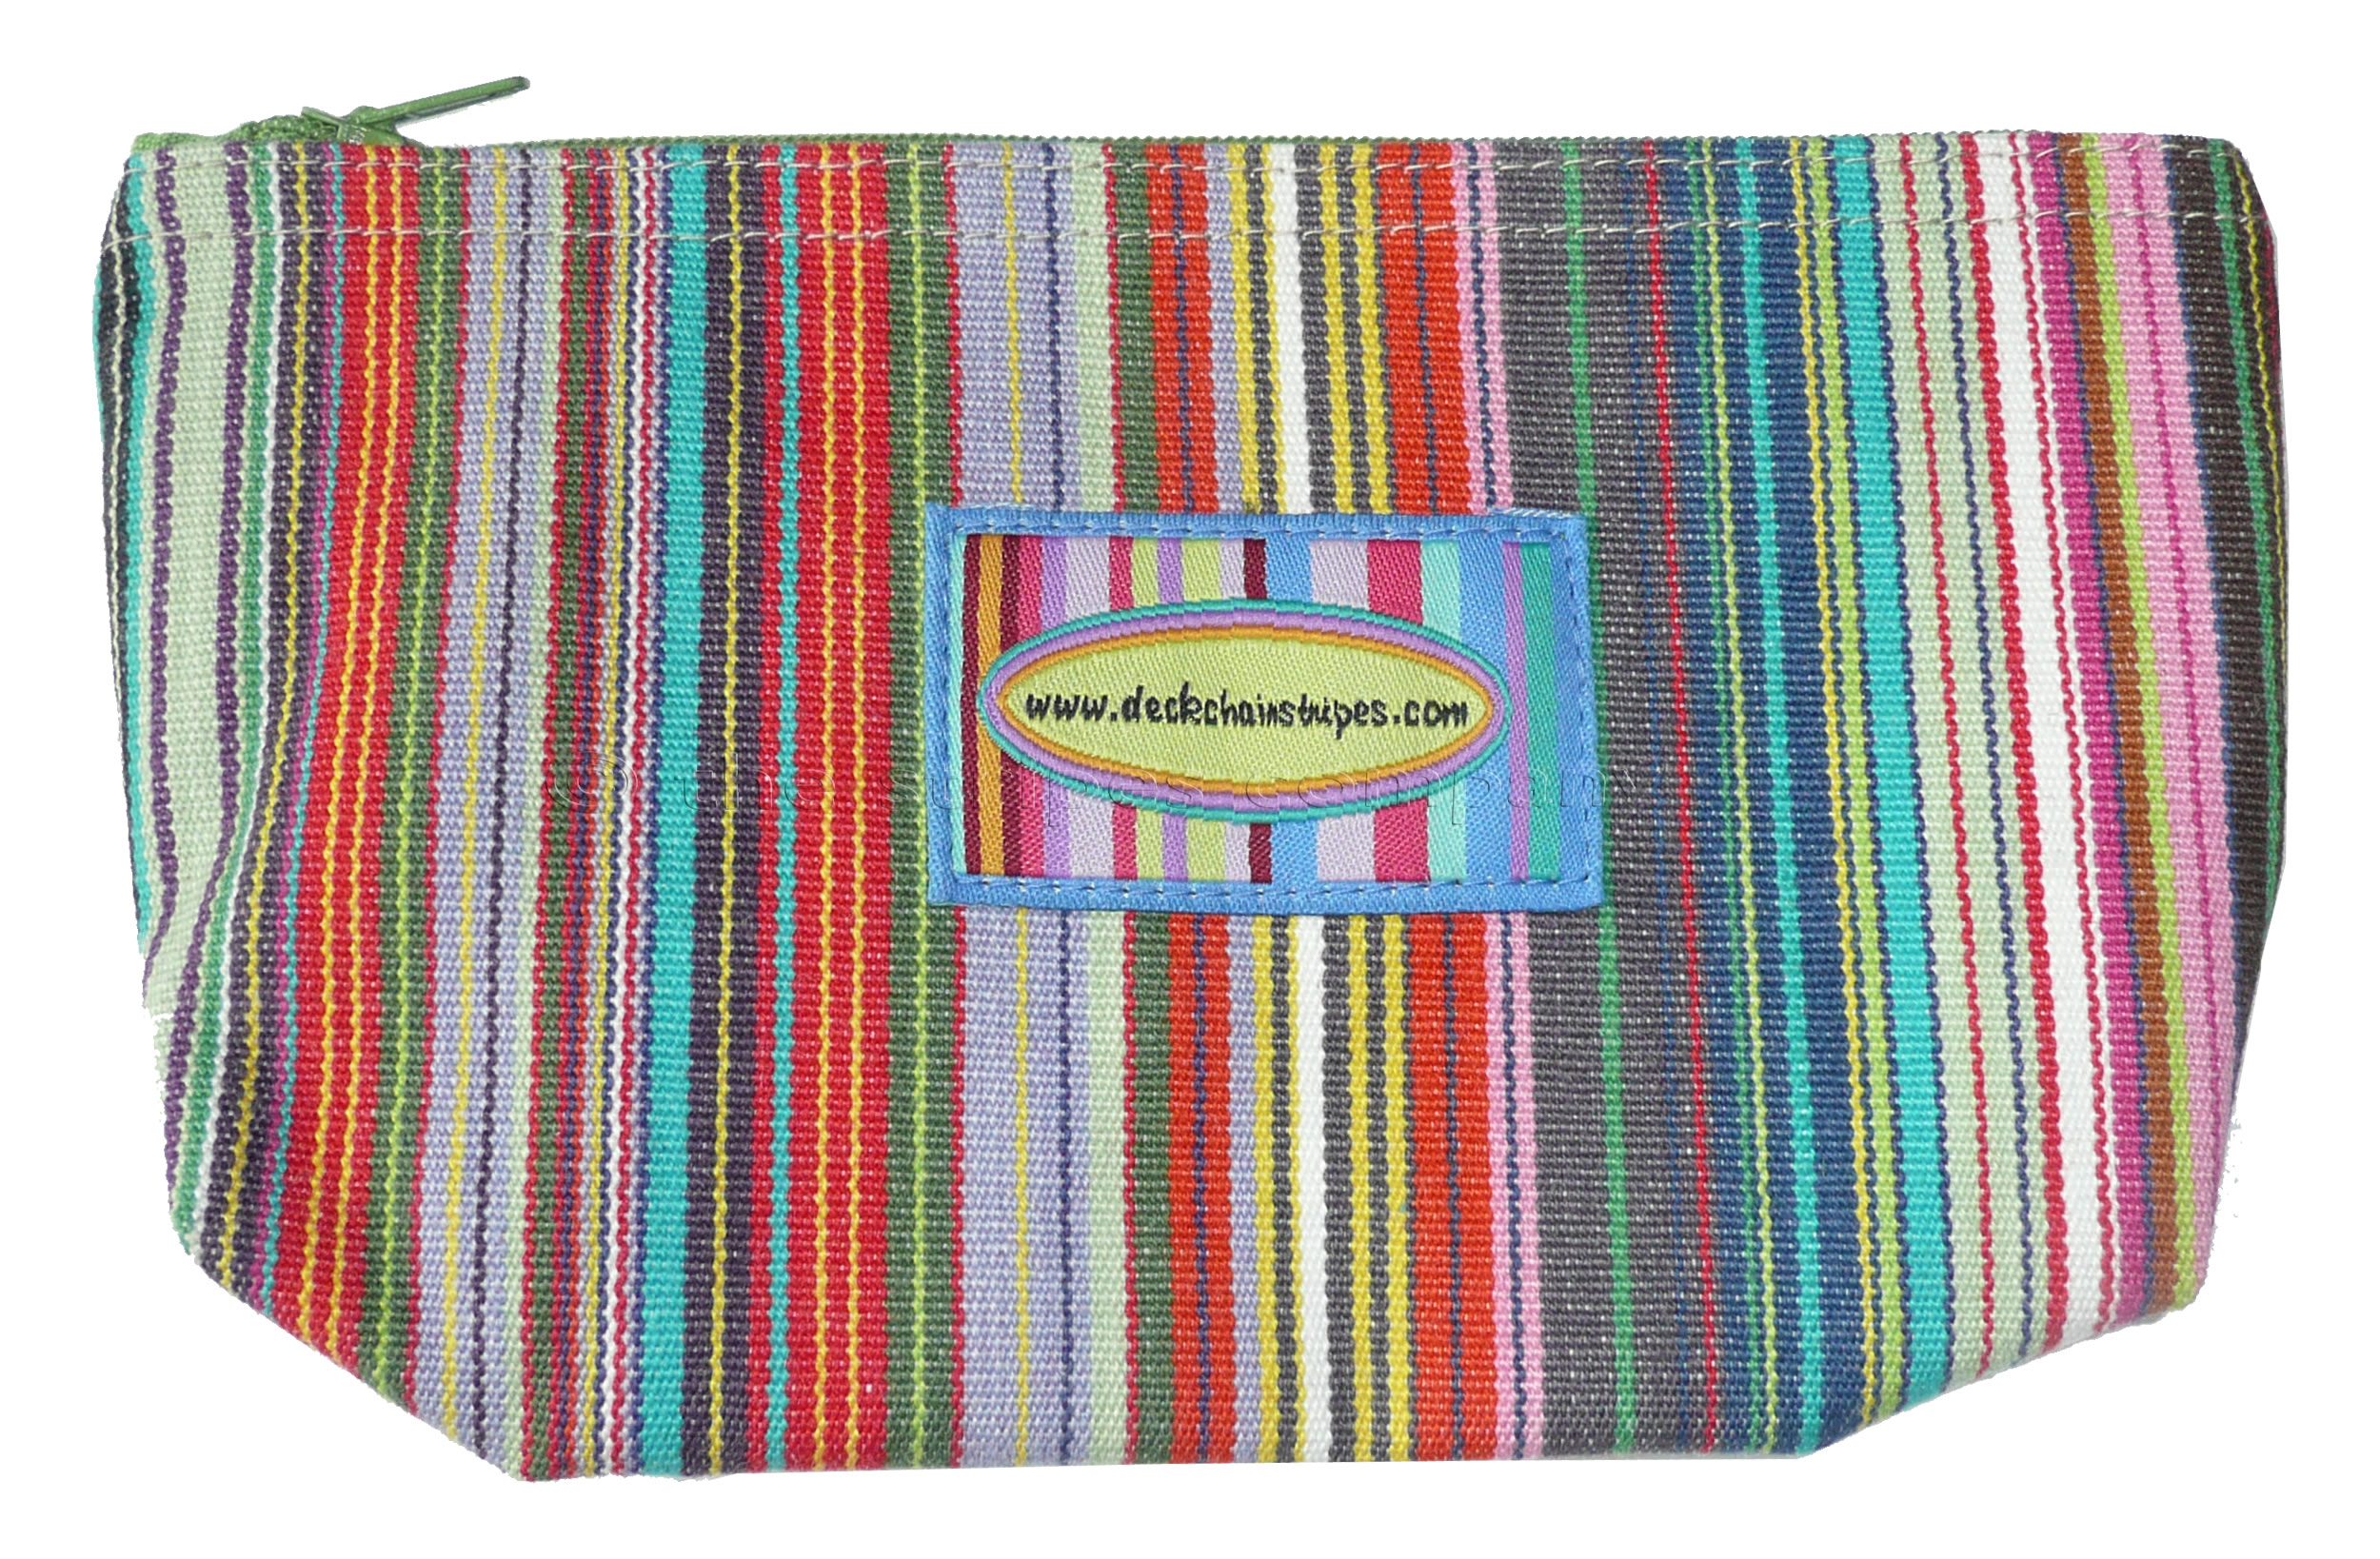 Thin Rainbow Multi Stripes  Striped Purses | Small Zipped Bags | Cosmetic Bags Mahjong Stripes